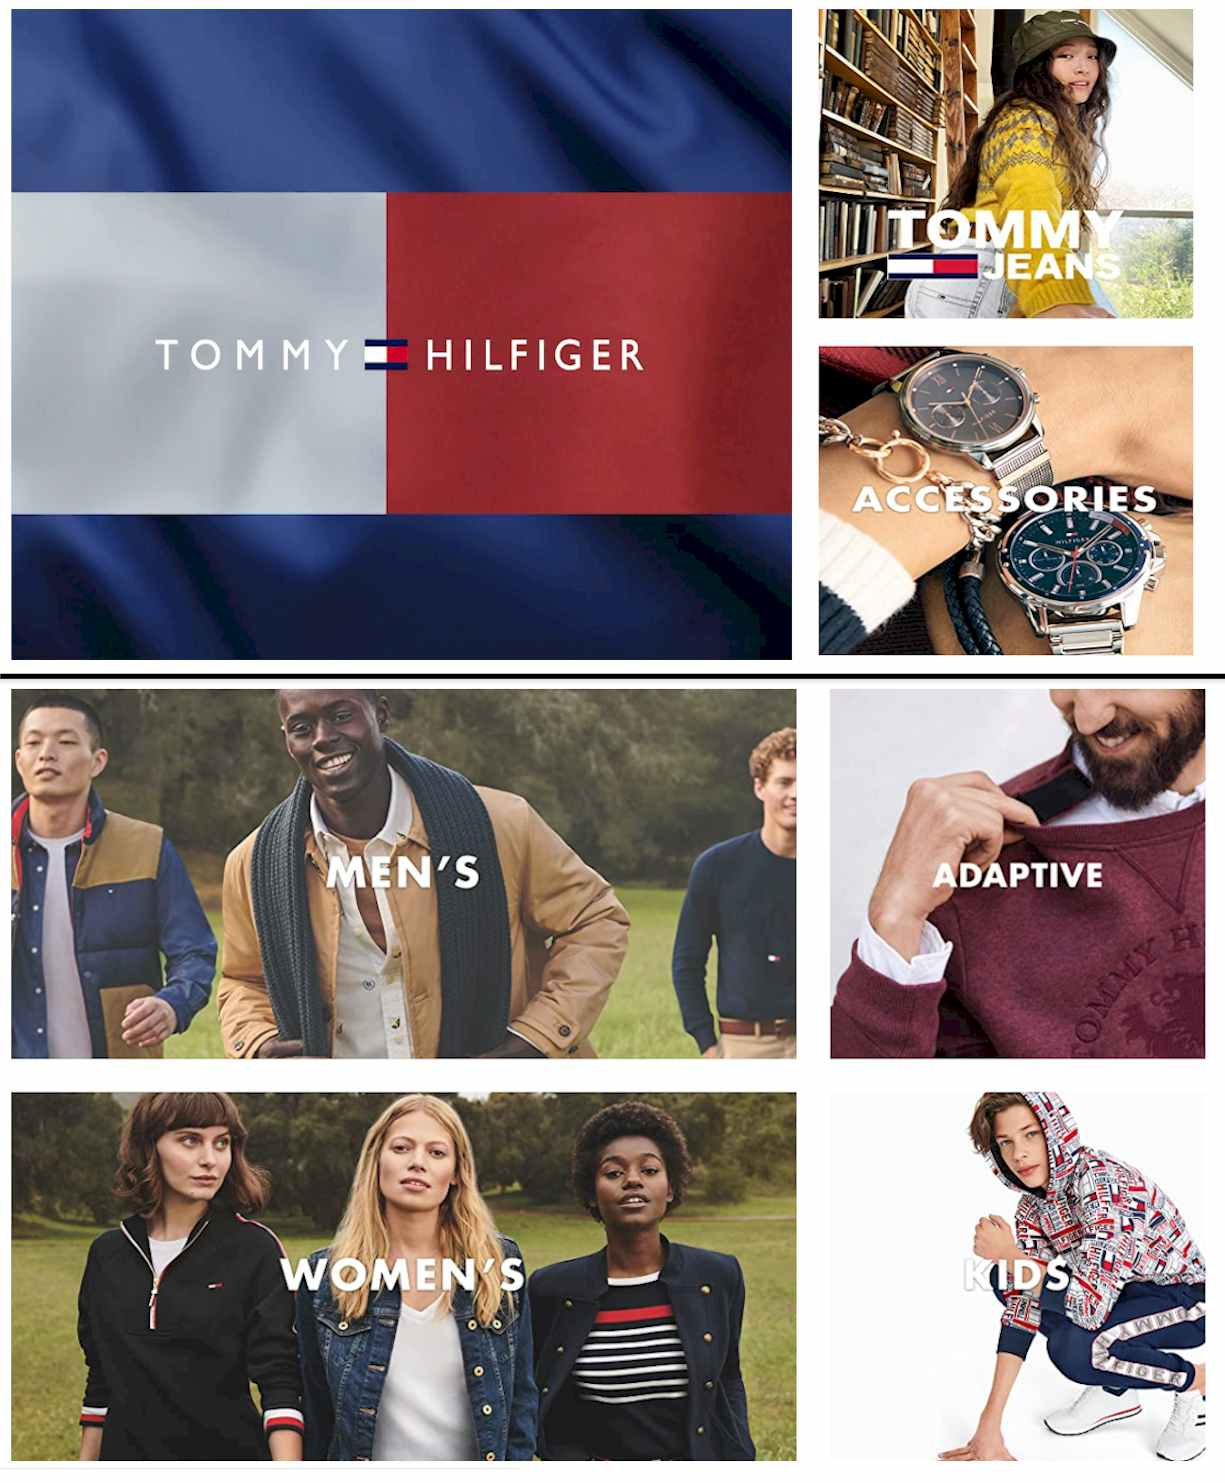 Tommy Hilfiger Store on Amazon